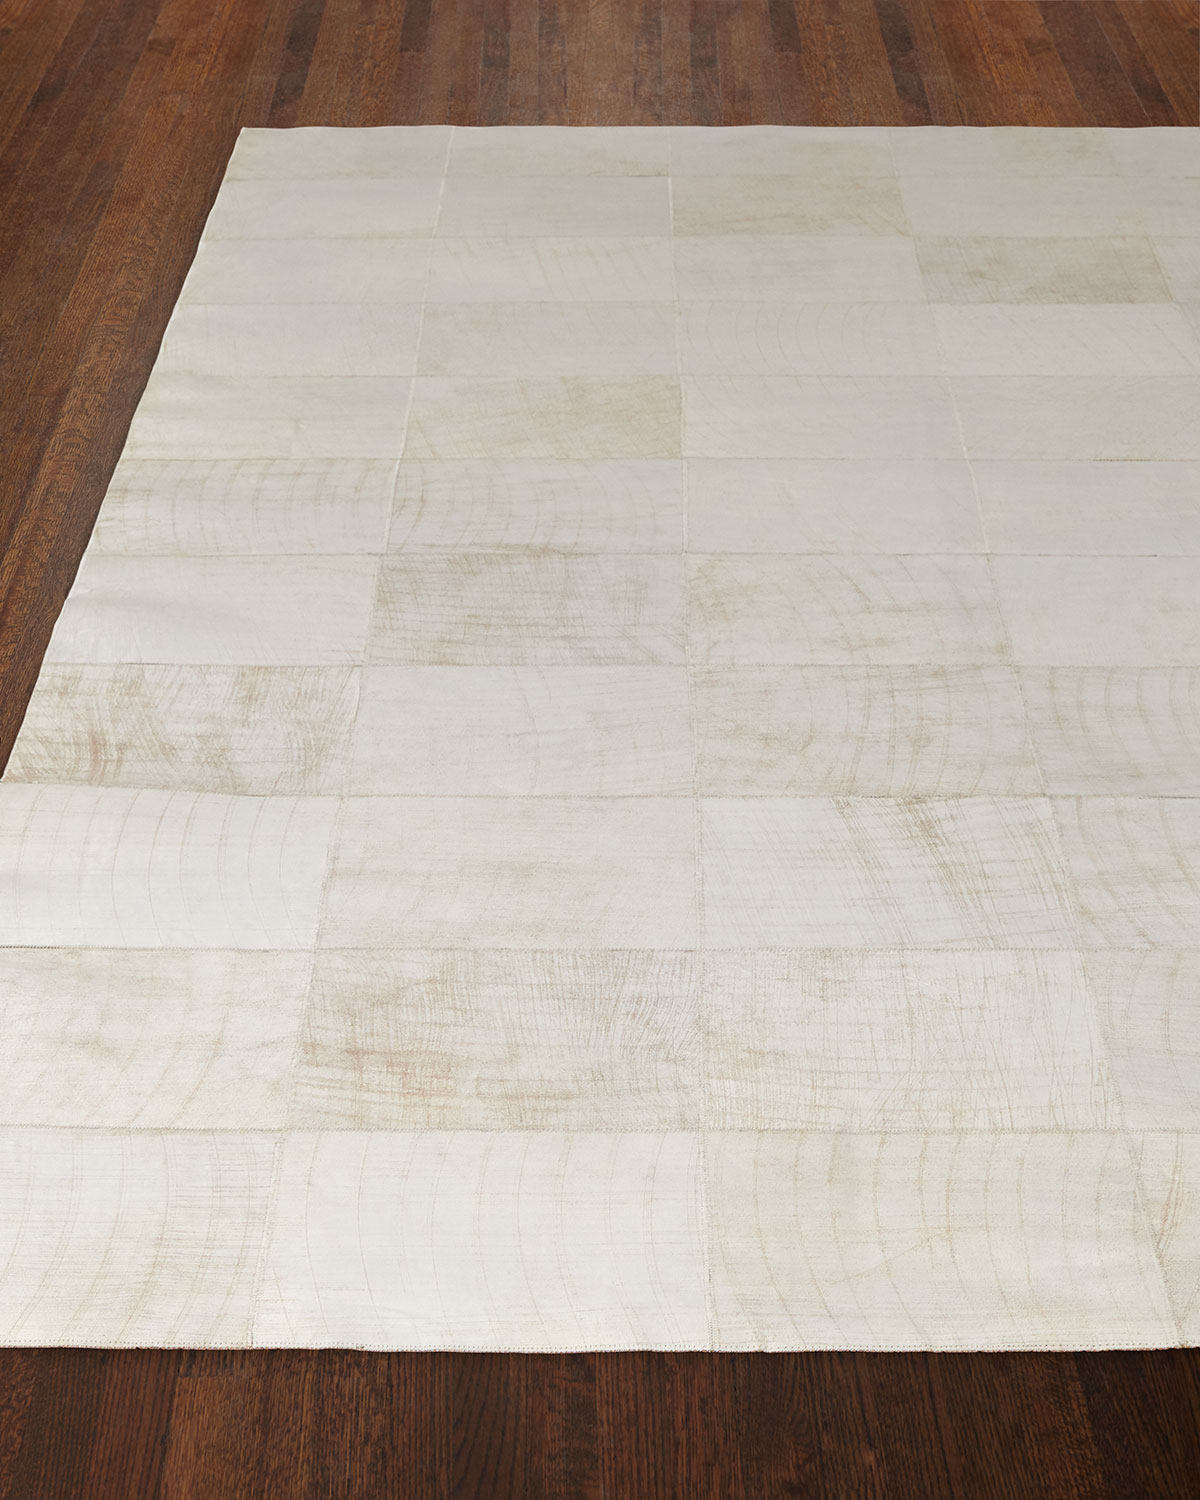 Exquisite Rugs Dooley Ivory Leather Rug, 5' x 8'